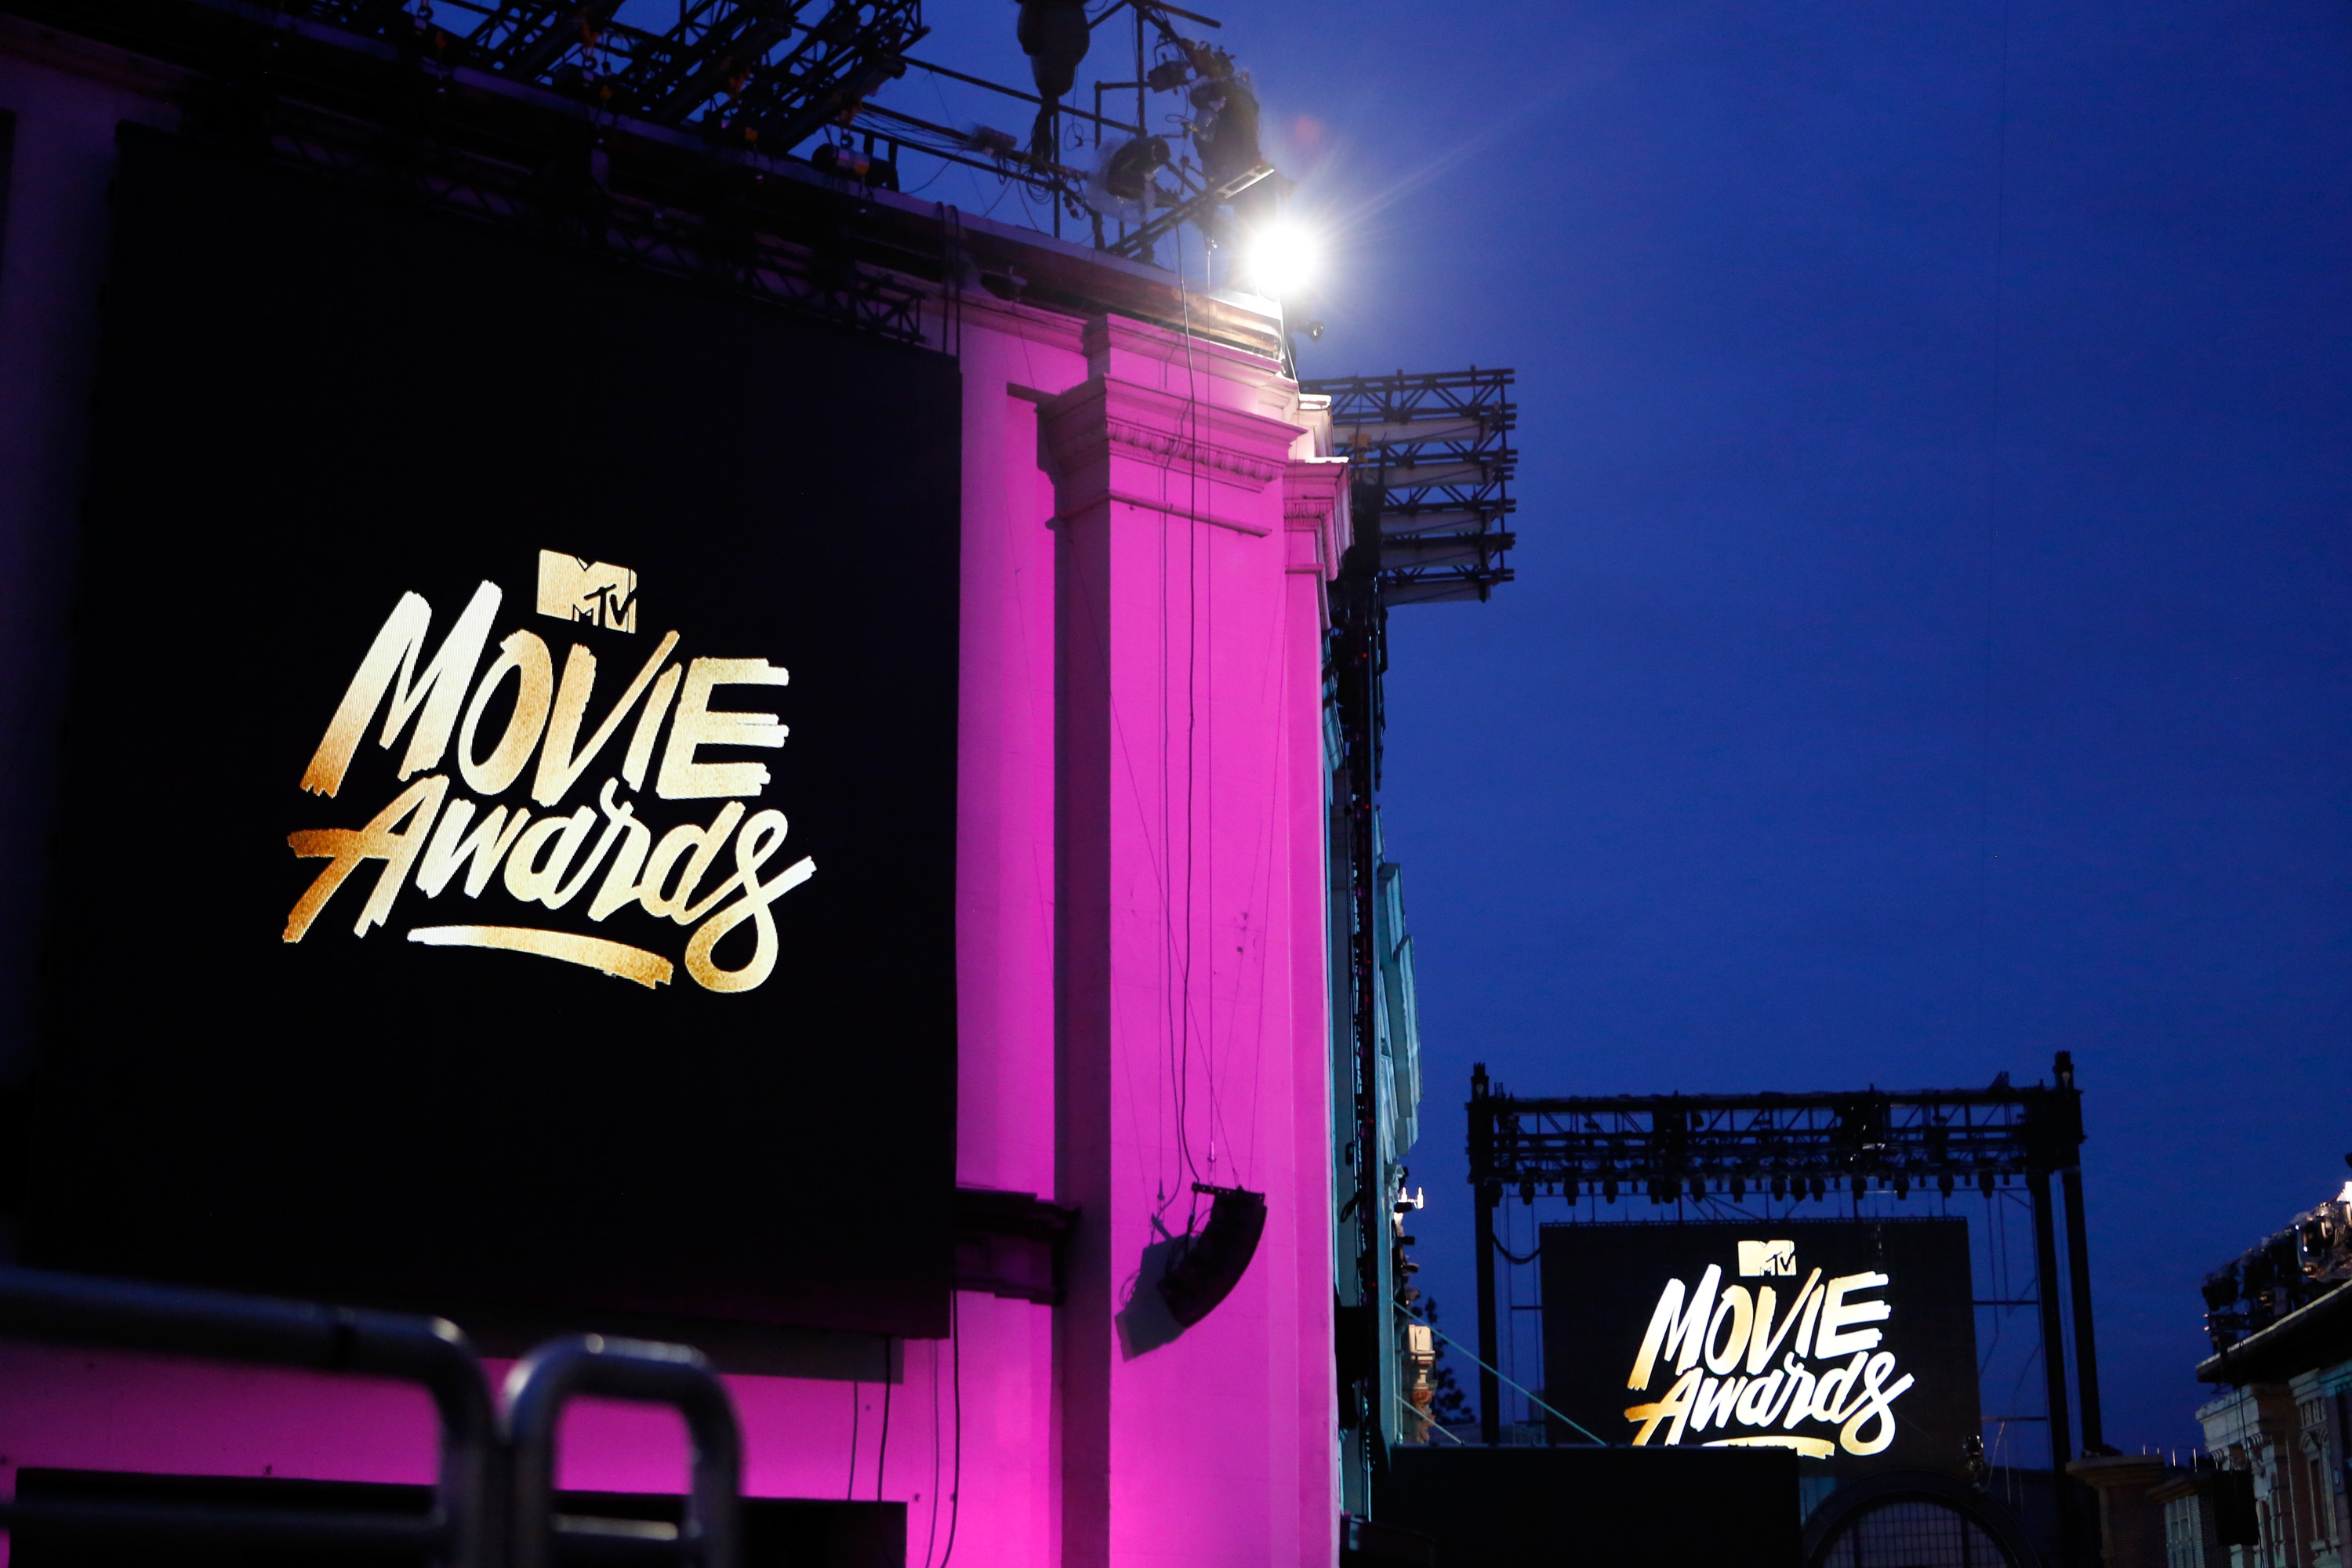 BURBANK, CALIFORNIA - APRIL 07: (EXCLUSIVE ACCESS, SPECIAL RATES APPLY) A preview of the 2016 MTV Movie Awards during the 2016 MTV Movie Awards Press Junket at Warner Bros. Studios on April 7, 2016 in Burbank, California. (Photo by Randy Shropshire/MTV1415/Getty Images for MTV)